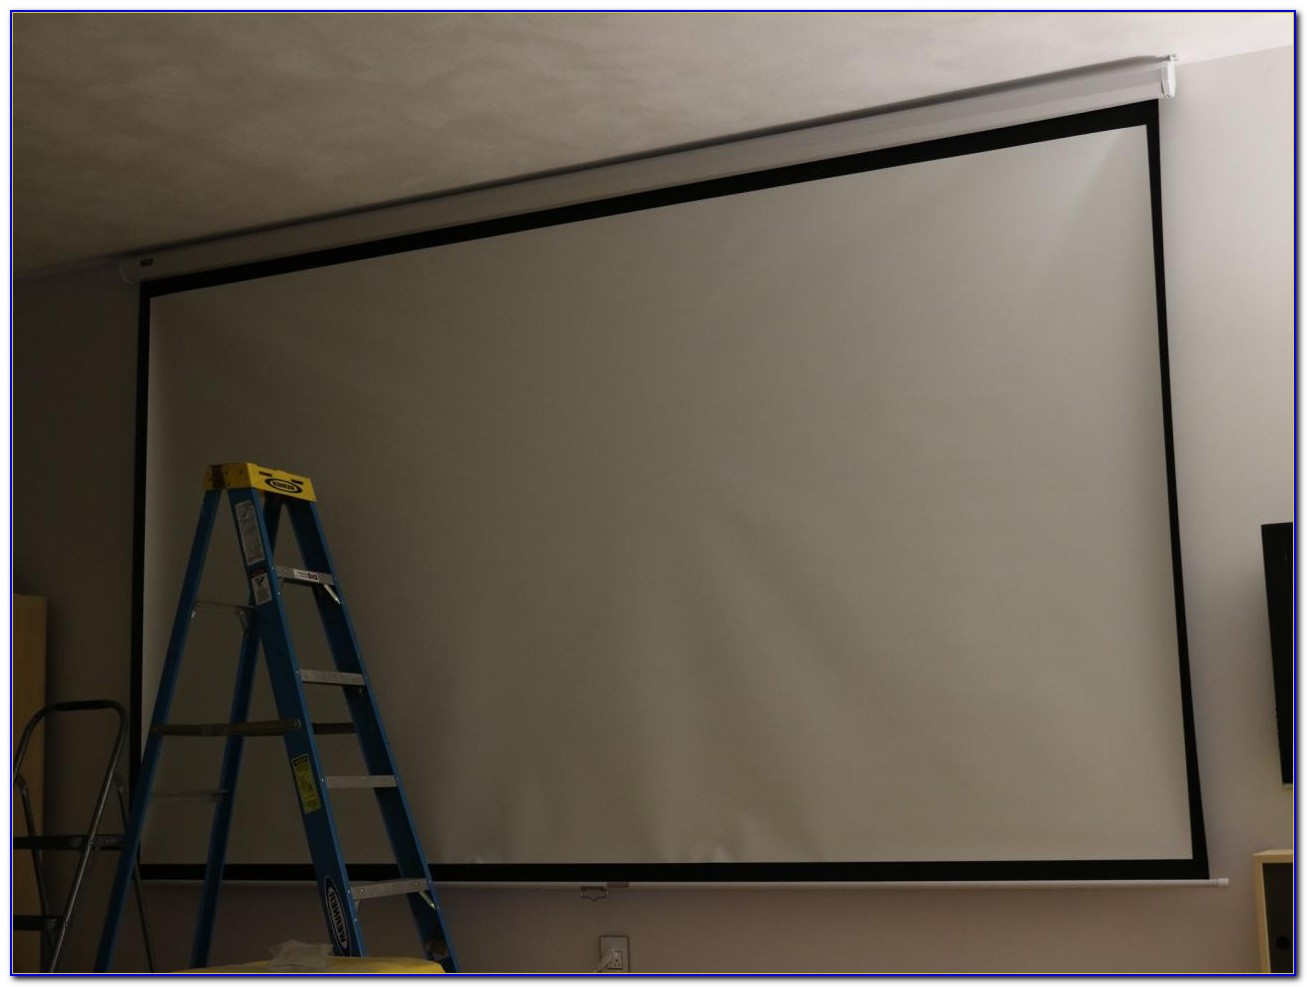 Ceiling Mounted Screen For Projector